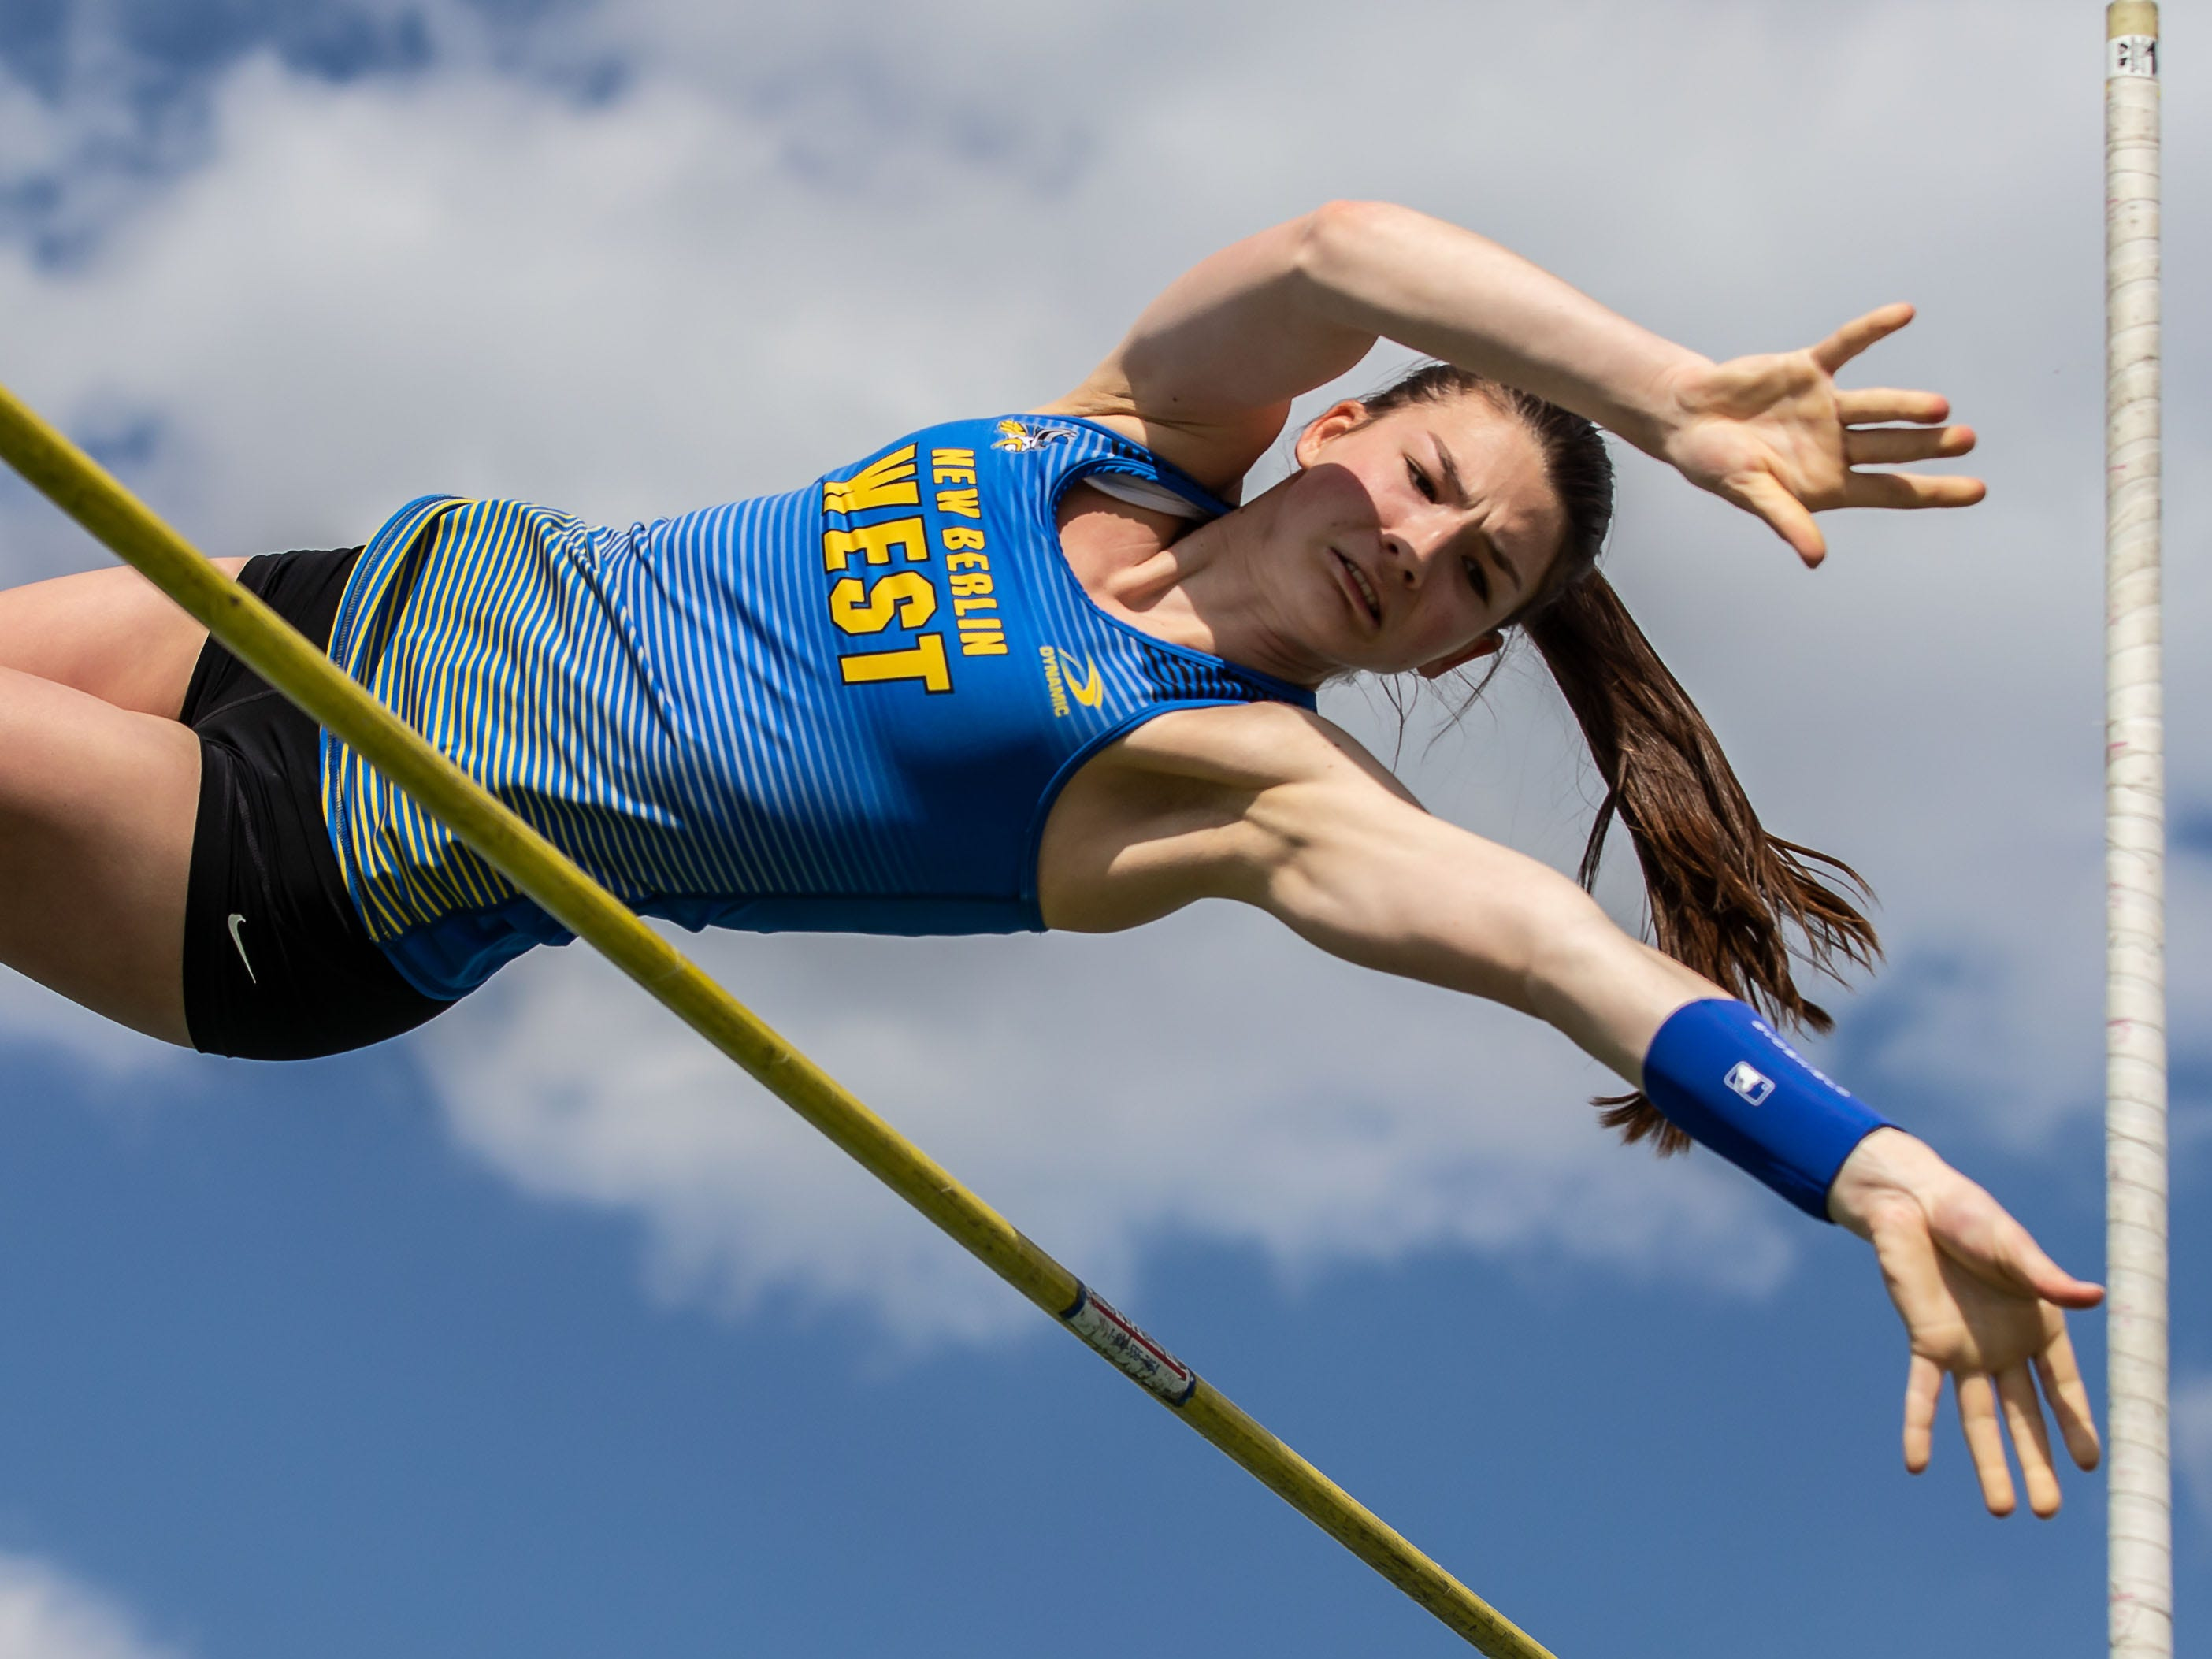 New Berlin West's Jacqueline Gerovac wins the girls pole vault at the Woodland Conference Track and Field Championships in West Allis on Tuesday, May 14, 2019.